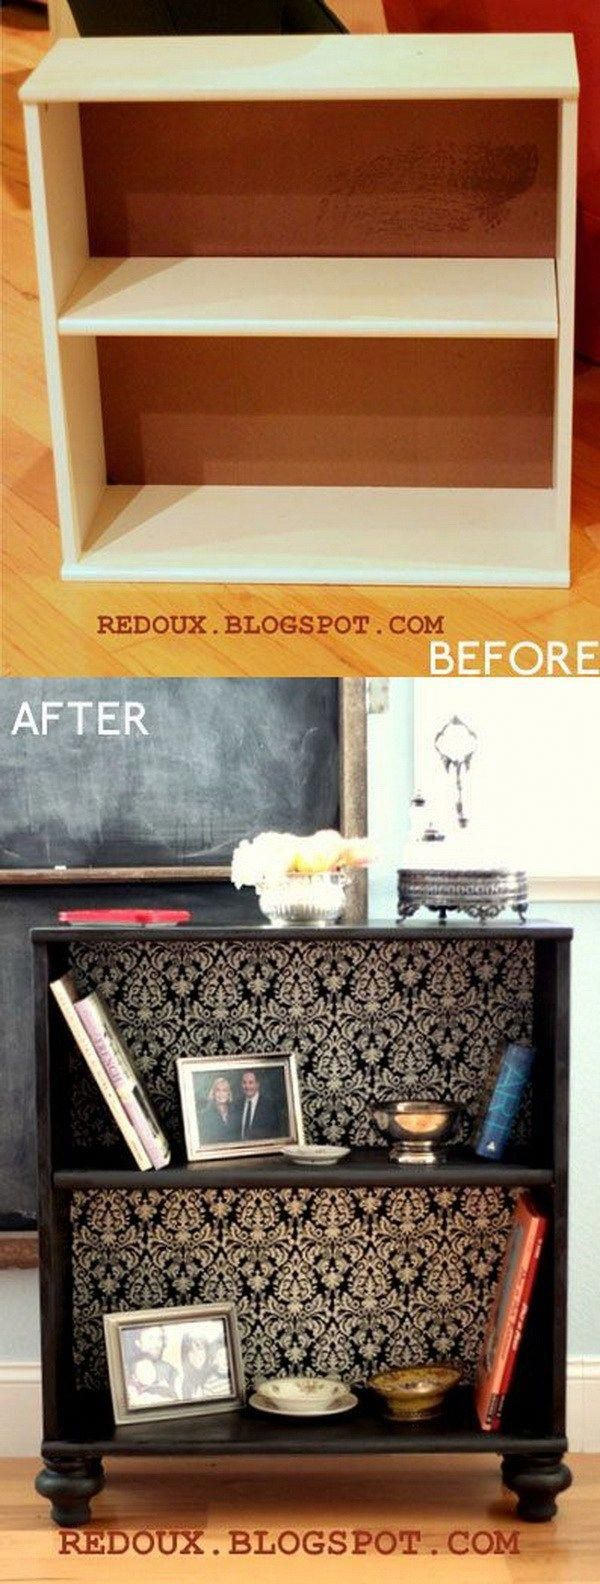 Matching end tables in distressed Black & Oatmeal - Before ... |Repurposed Furniture Before And After